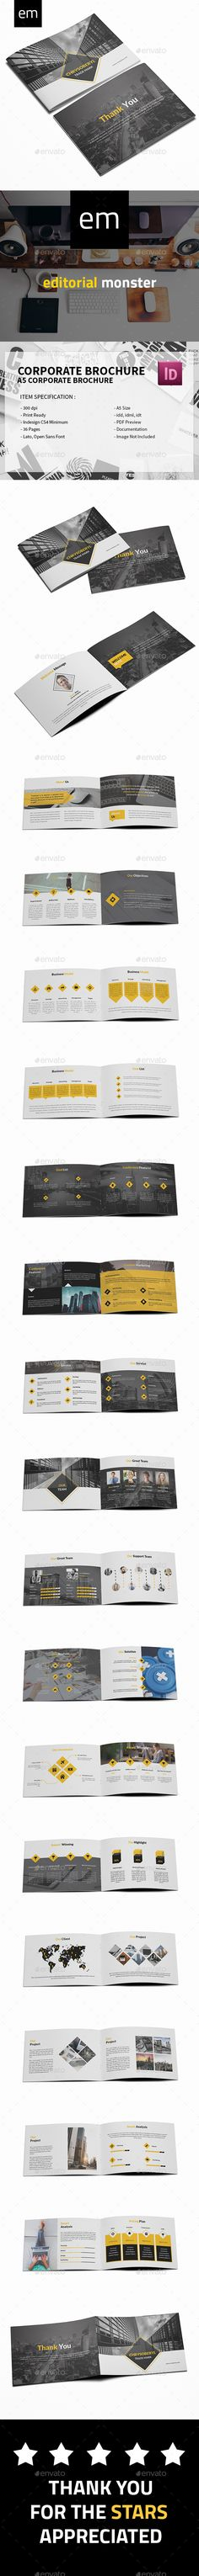 Corporate Brochure Template — InDesign INDD #minimalist #hexagonal • Available here → https://graphicriver.net/item/corporate-brochure-template/19587668?ref=pxcr